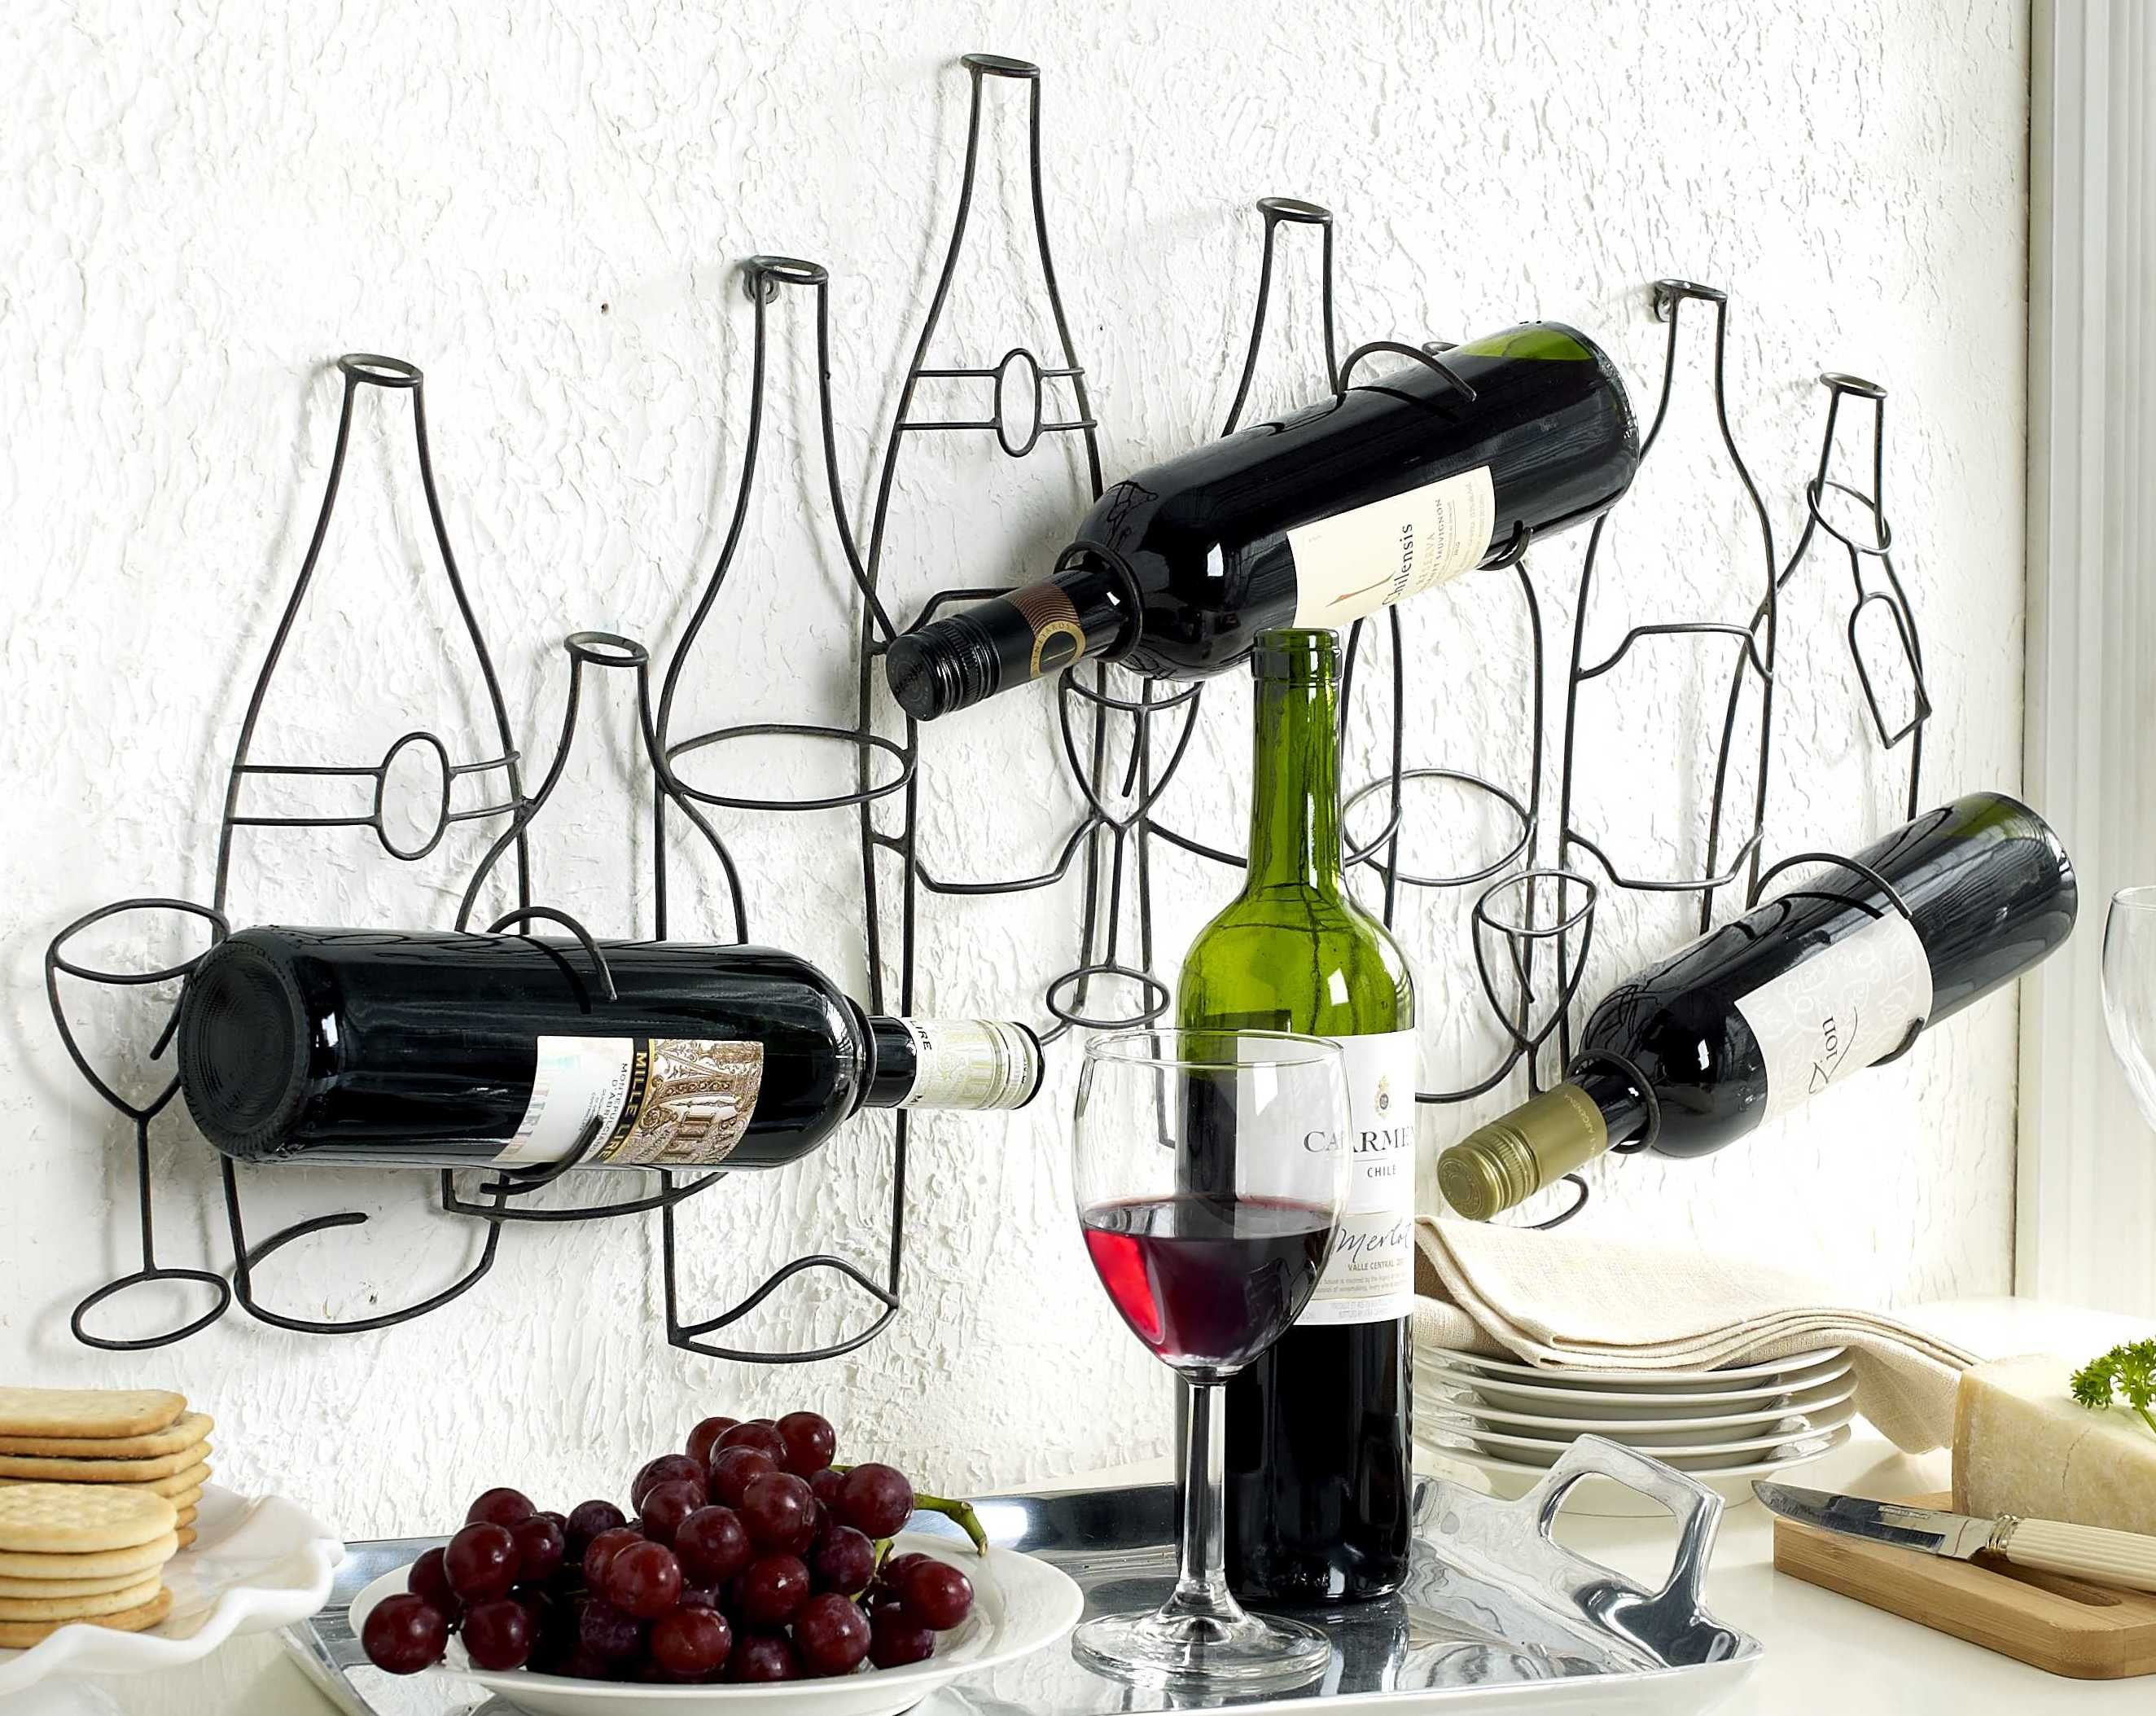 Wire wine bottle holder decor | Happy Hour | Pinterest ...